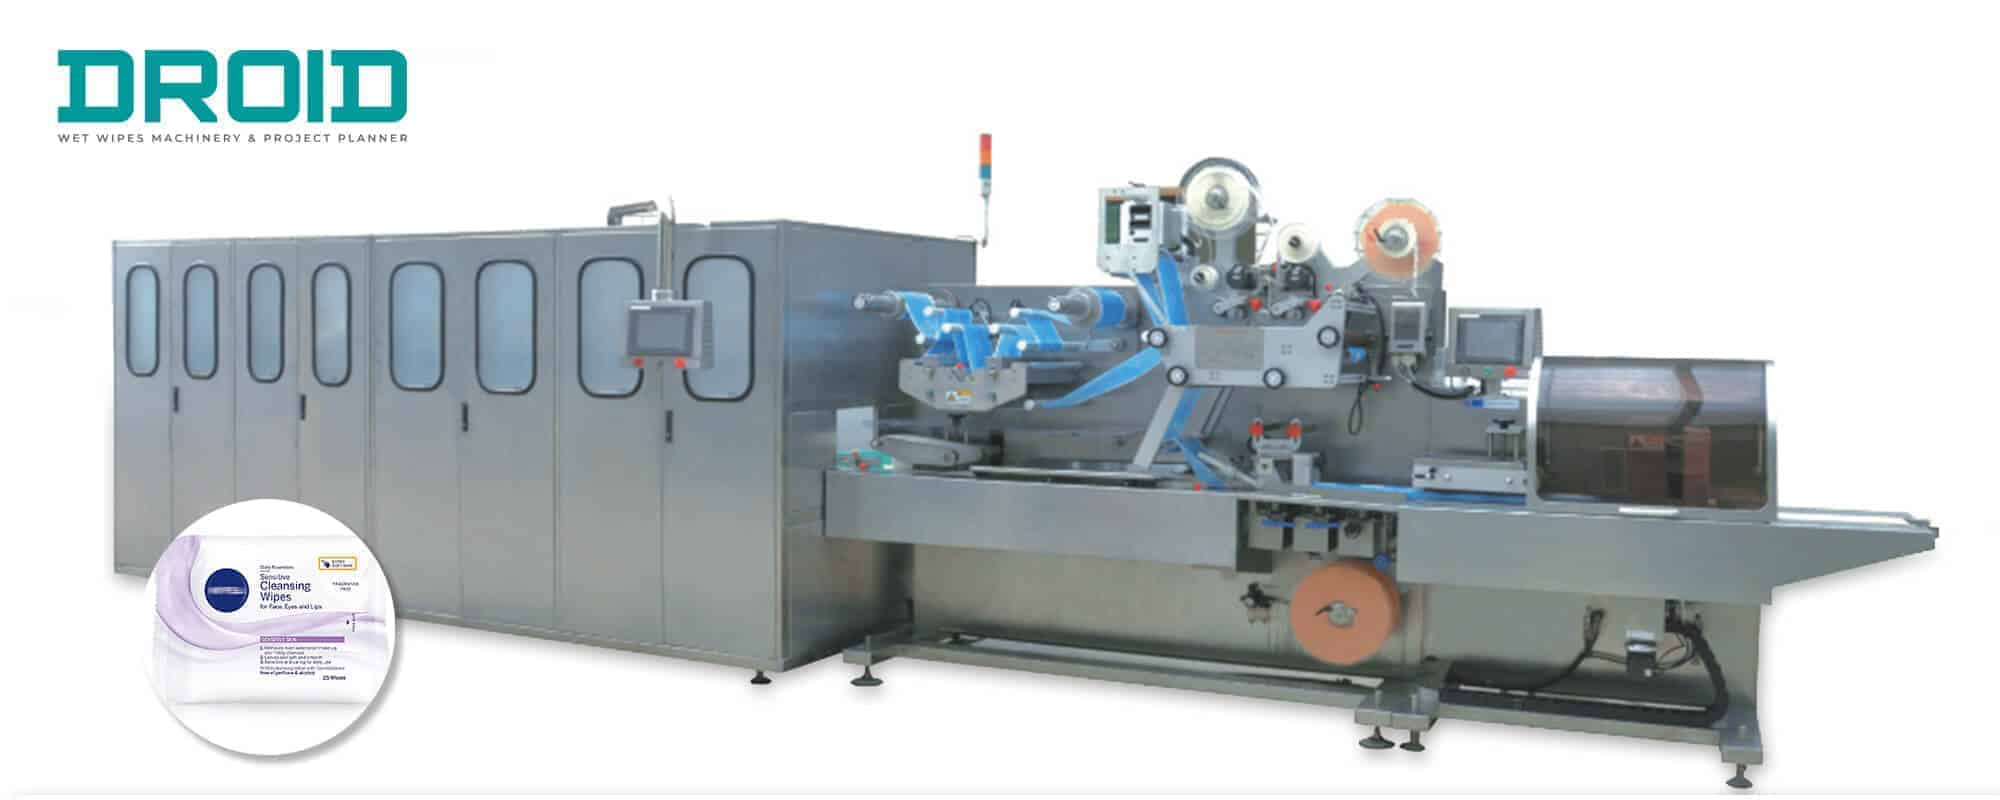 UT FL2 crossfol wet wipes converting and packaging machine - Are you looking for Disinfectant Wet Wipes Machine?